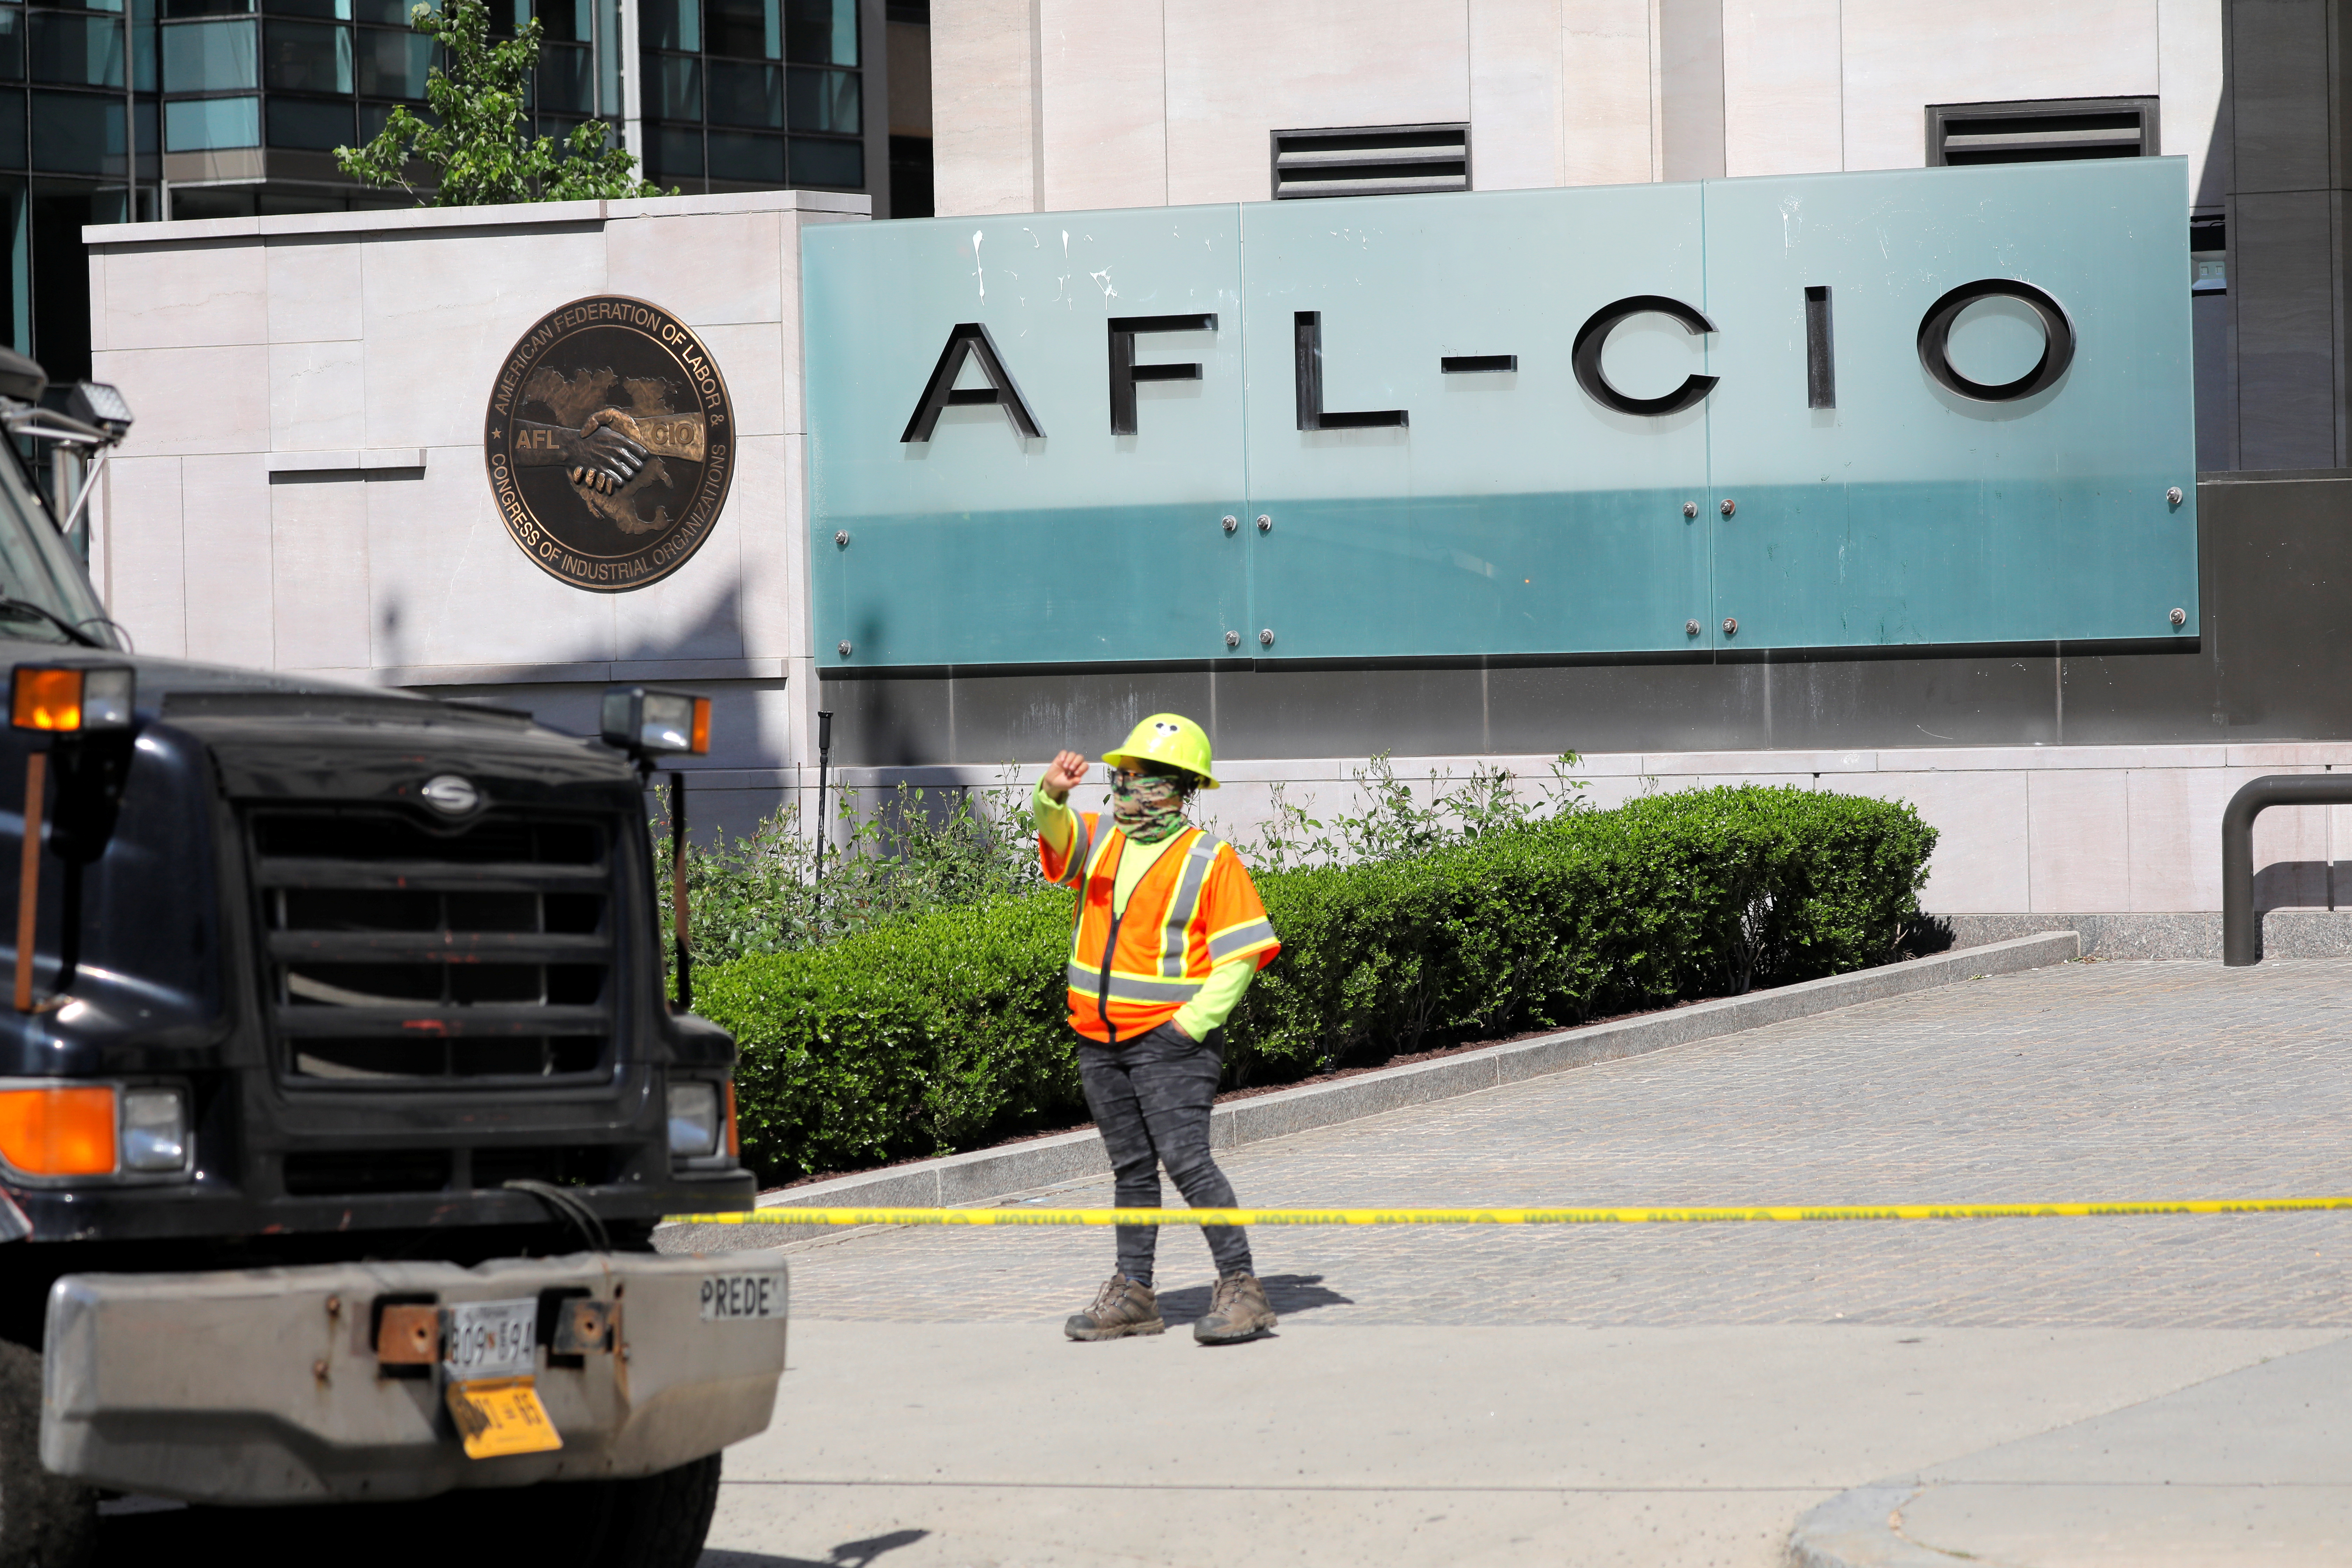 Workers resurface a road outside the headquarters of The American Federation of Labor and Congress of Industrial Organizations (AFL-CIO) in Washington, D.C., U.S., May 10, 2021. REUTERS/Andrew Kelly